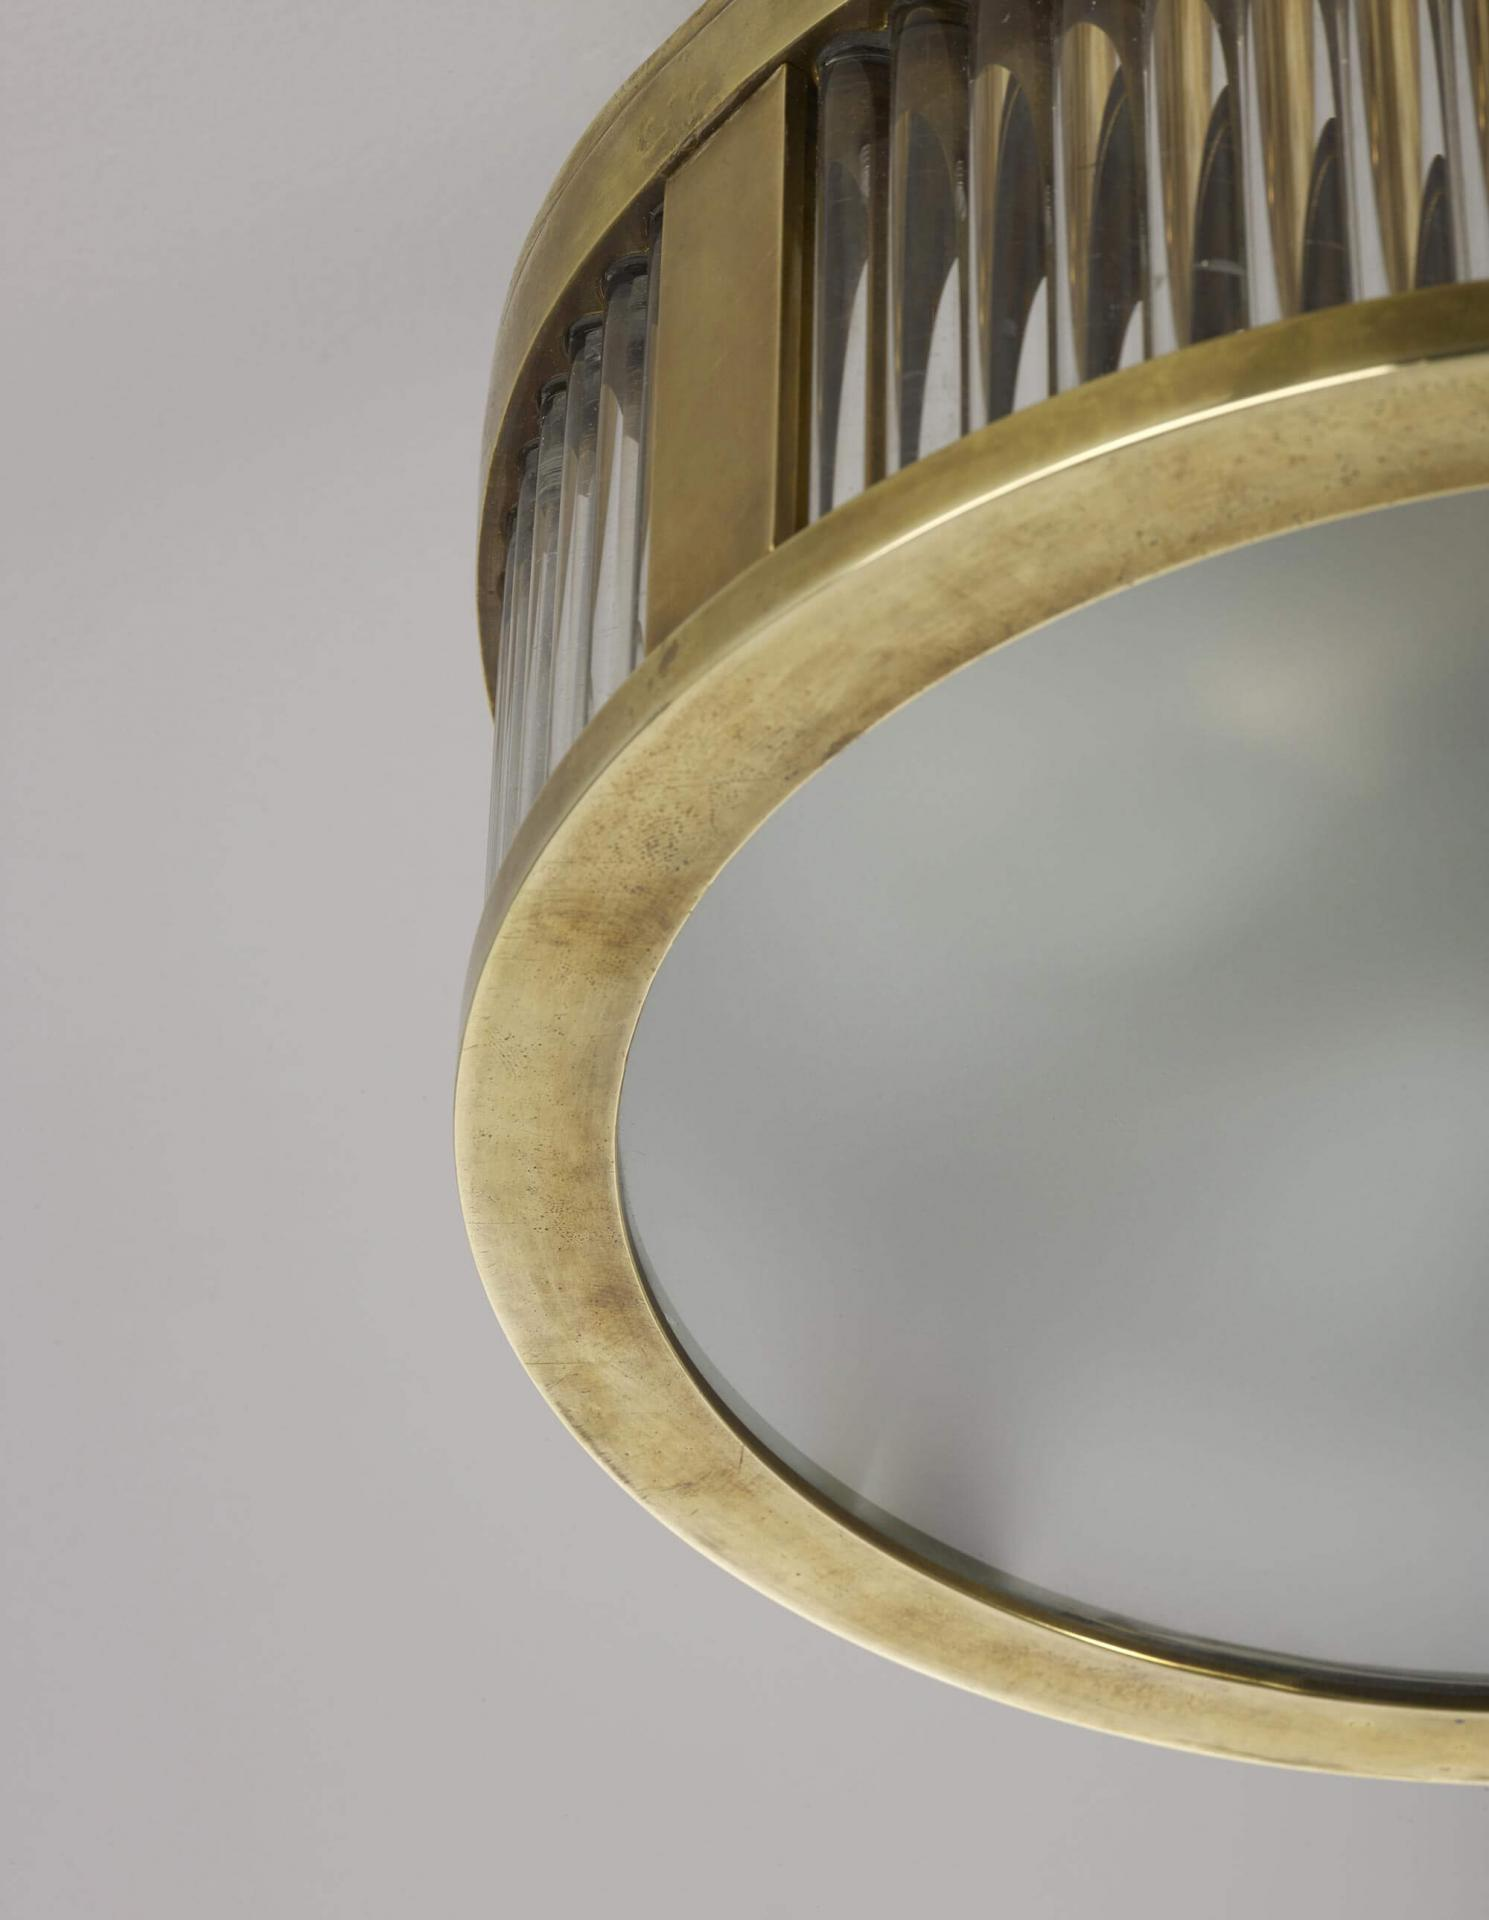 Small Round Odeon Plafonnier - a luxury ceiling light by Collier Webb